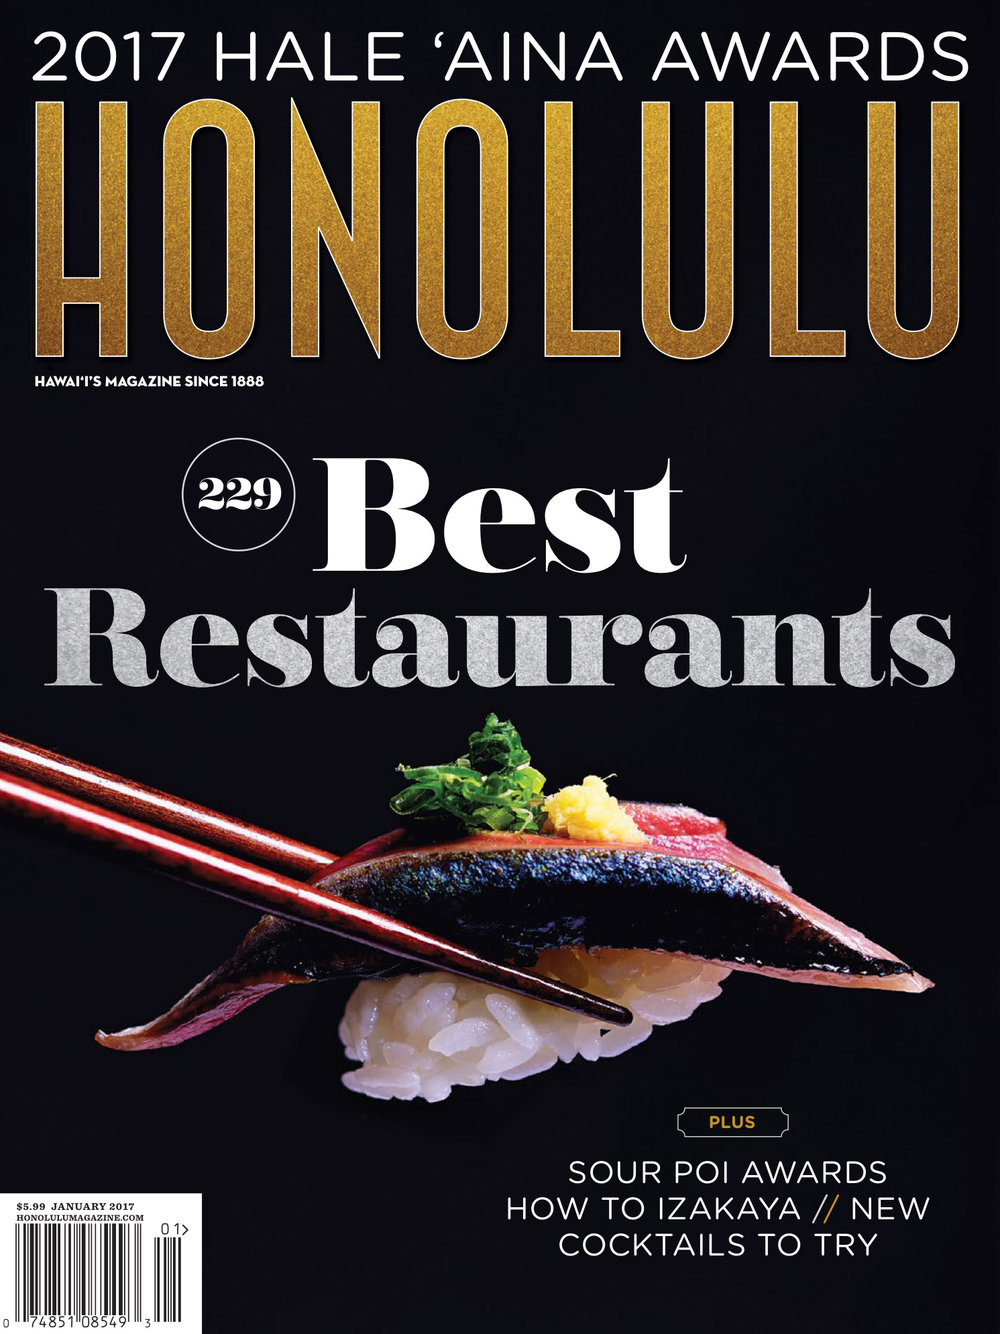 Honolulu Magazine    ©   2013-2017 Steve Czerniak